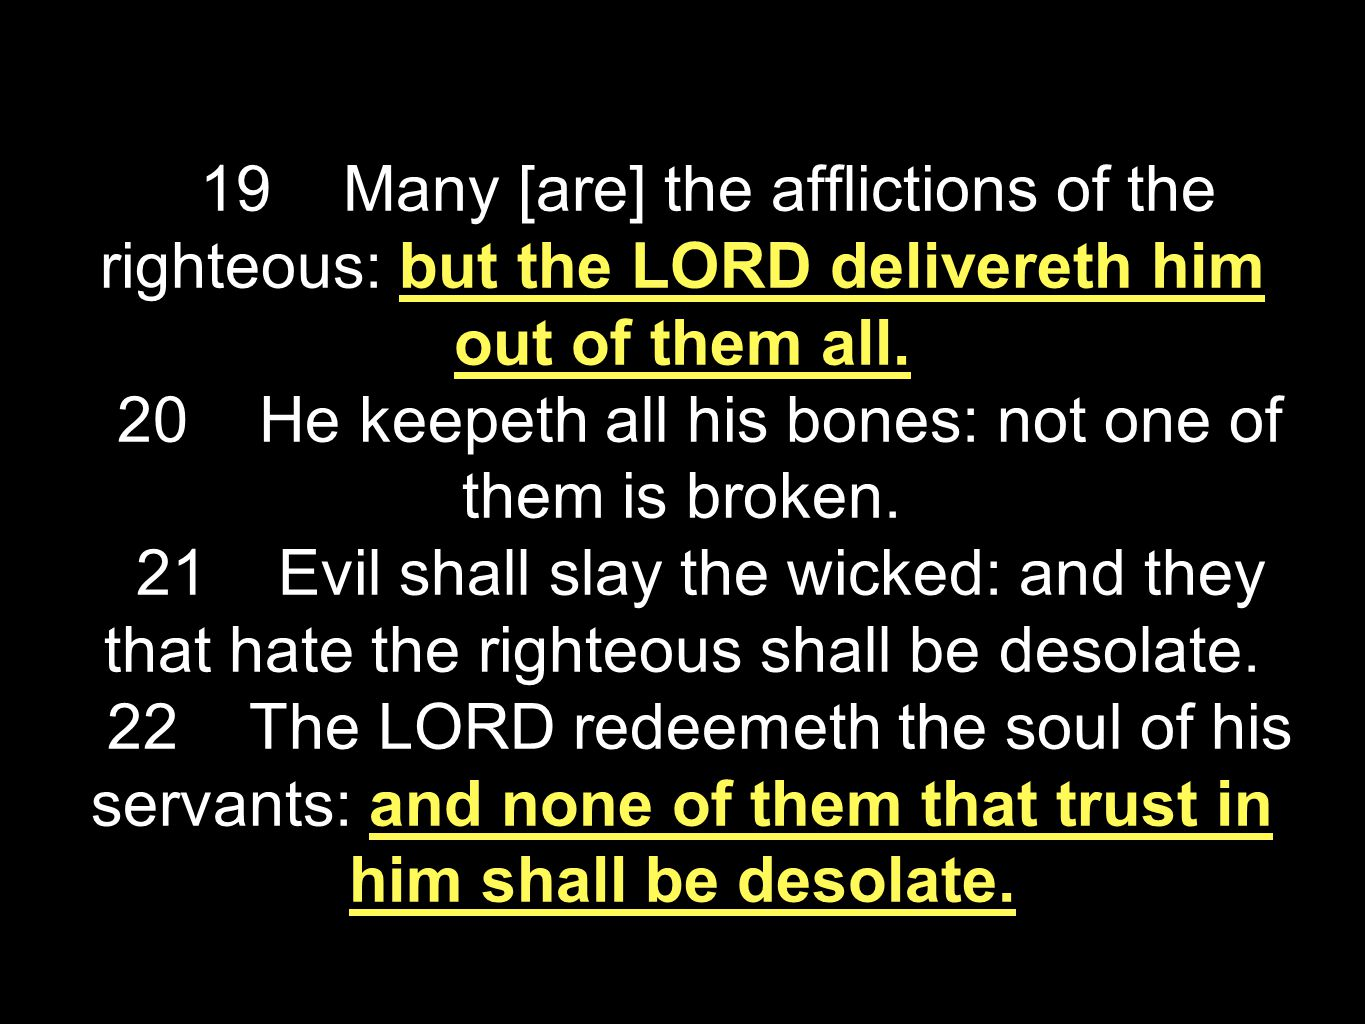 19 Many [are] the afflictions of the righteous: but the LORD delivereth him out of them all.